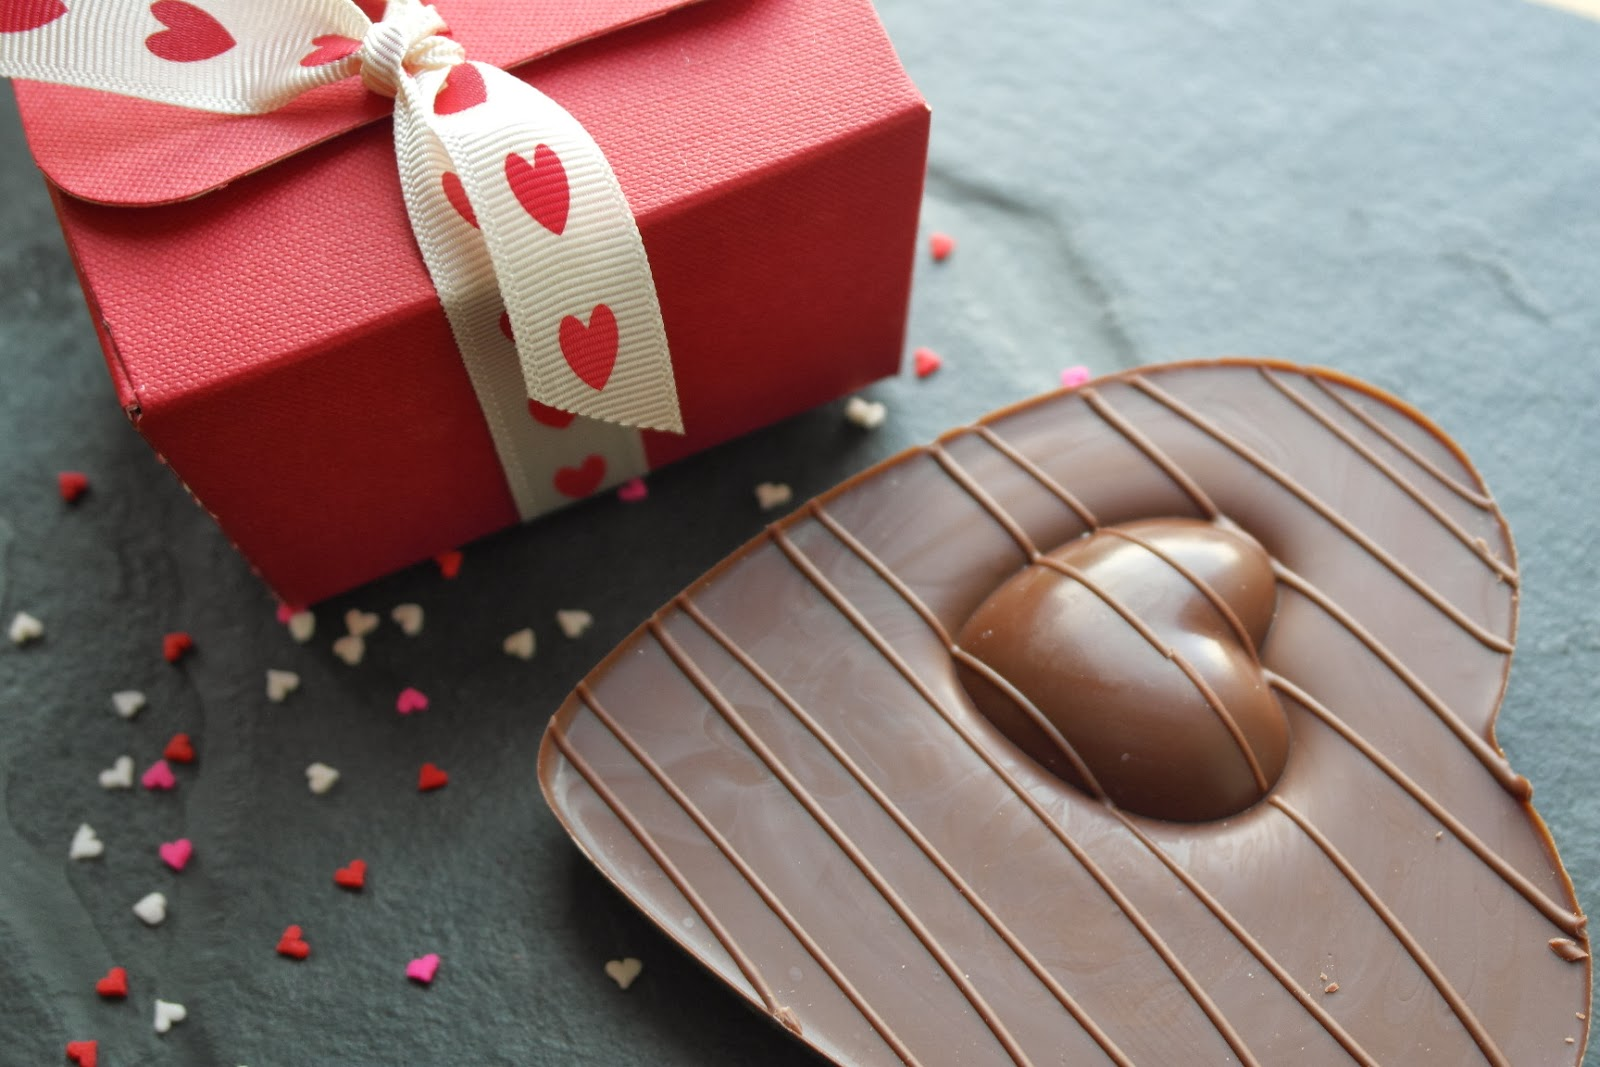 Chocolate hearts, champagne truffles